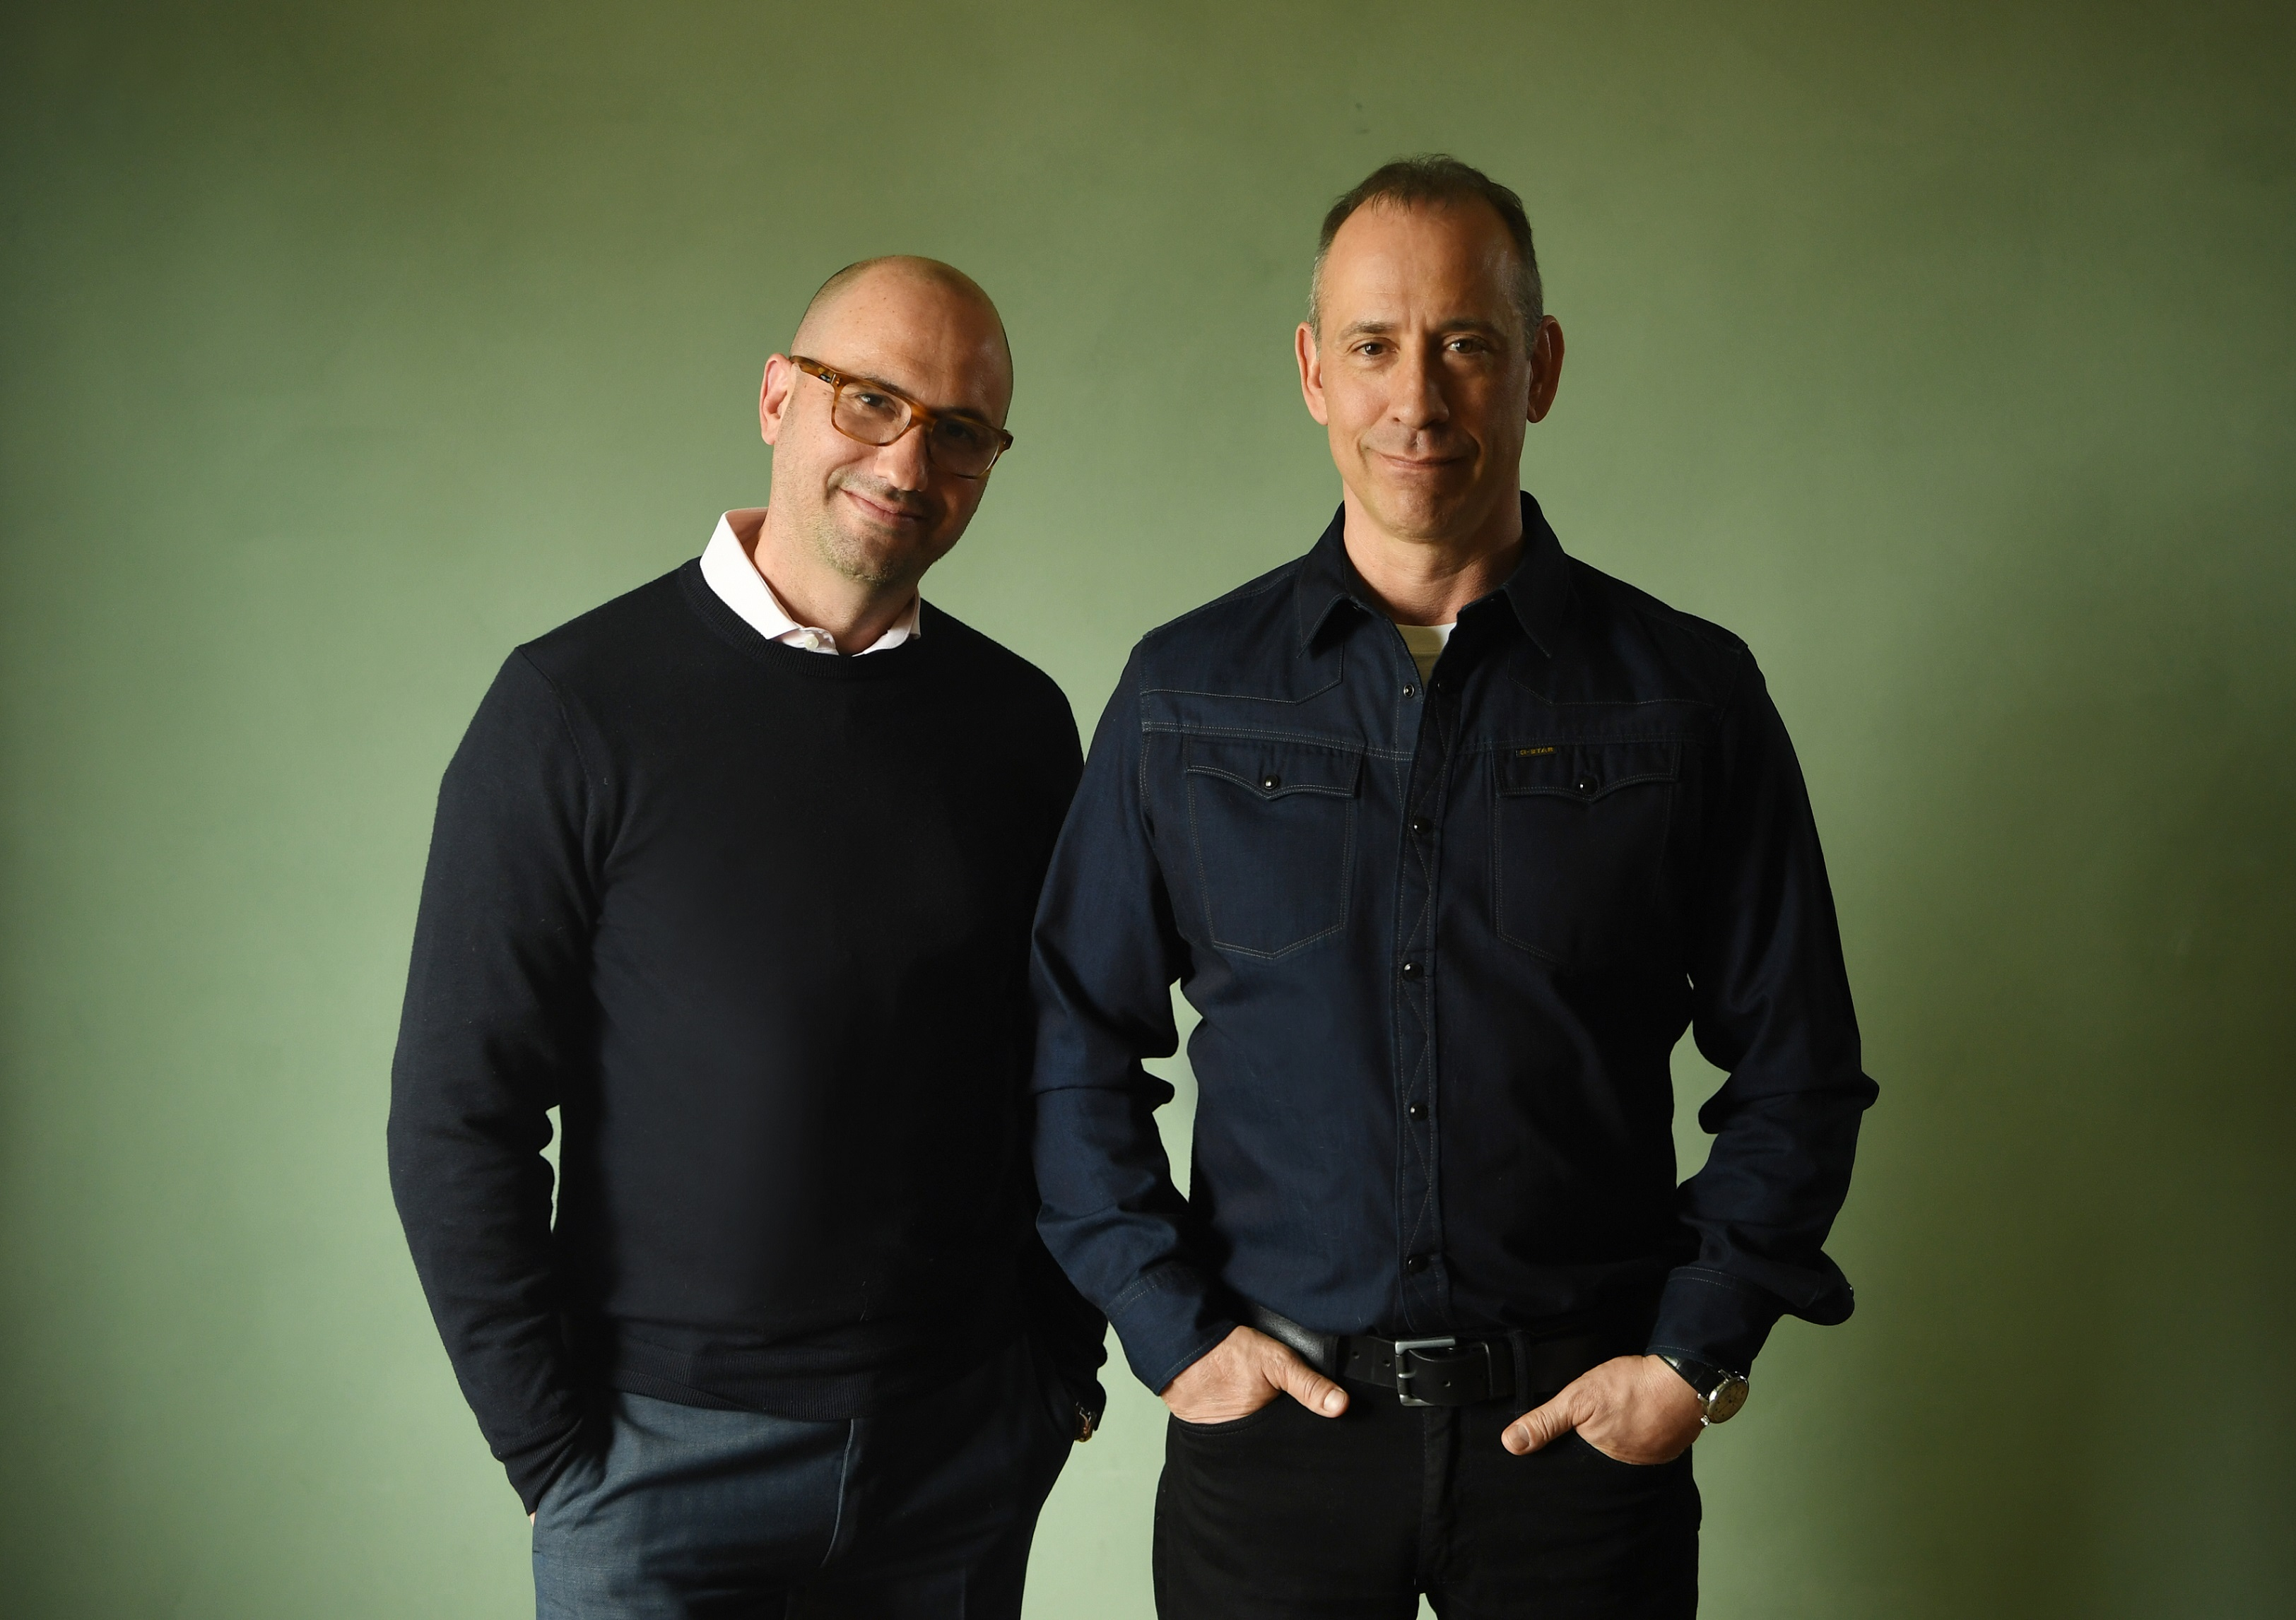 Two men wearing black stand in front of a green background